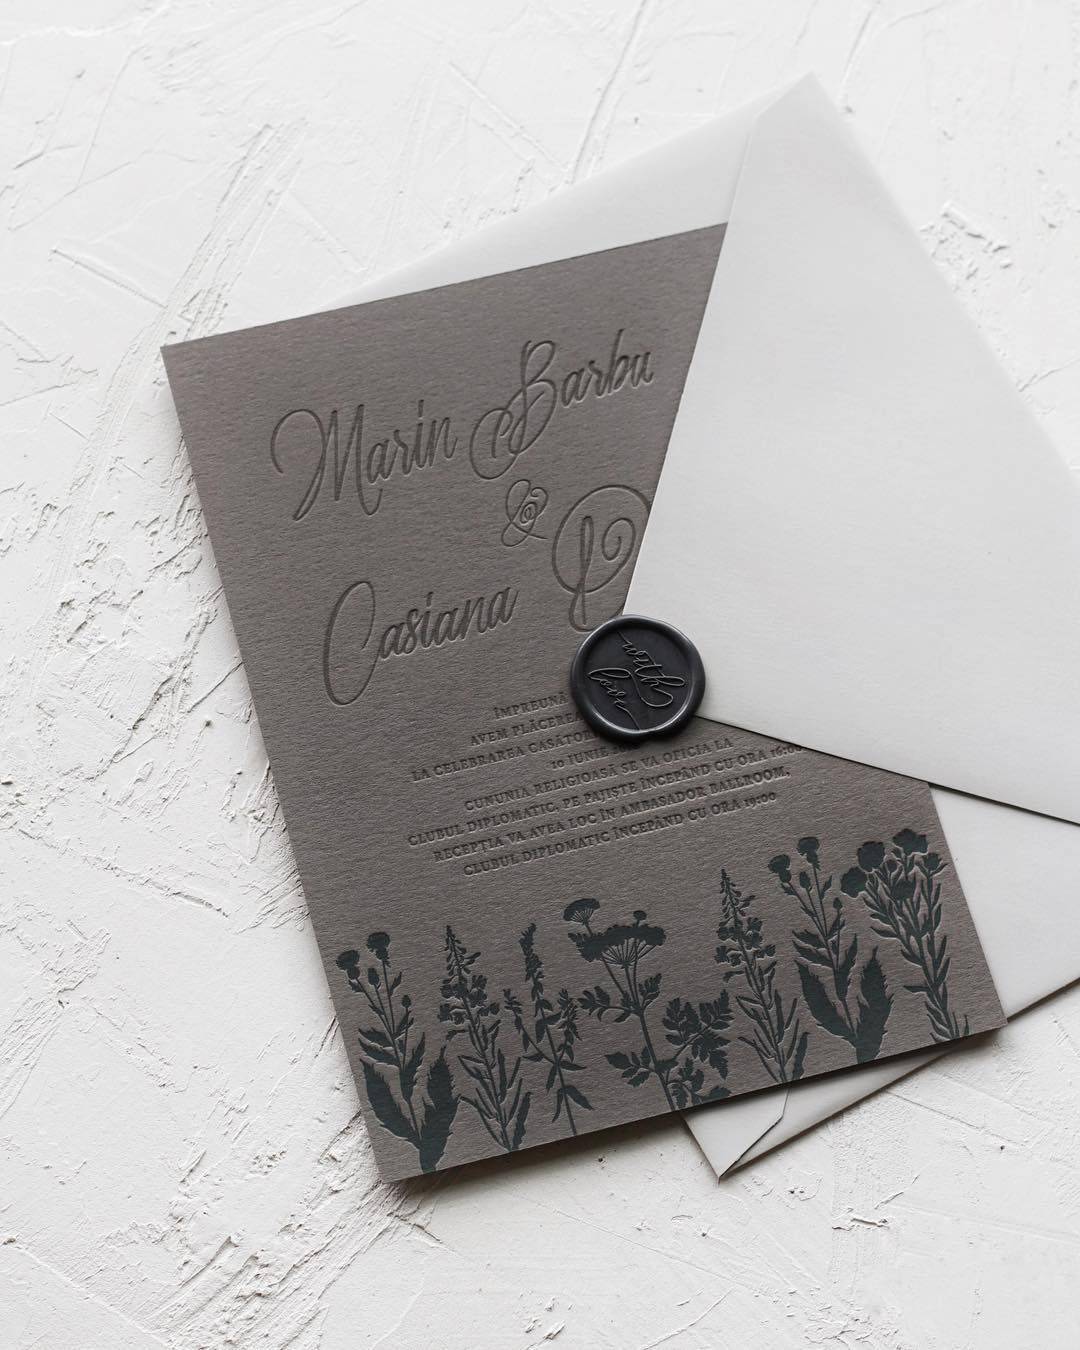 Matchy Matchy Letterpress Invite And Handmade Envelope: Grey Letterpress Wedding Invitations With Wax Seal And